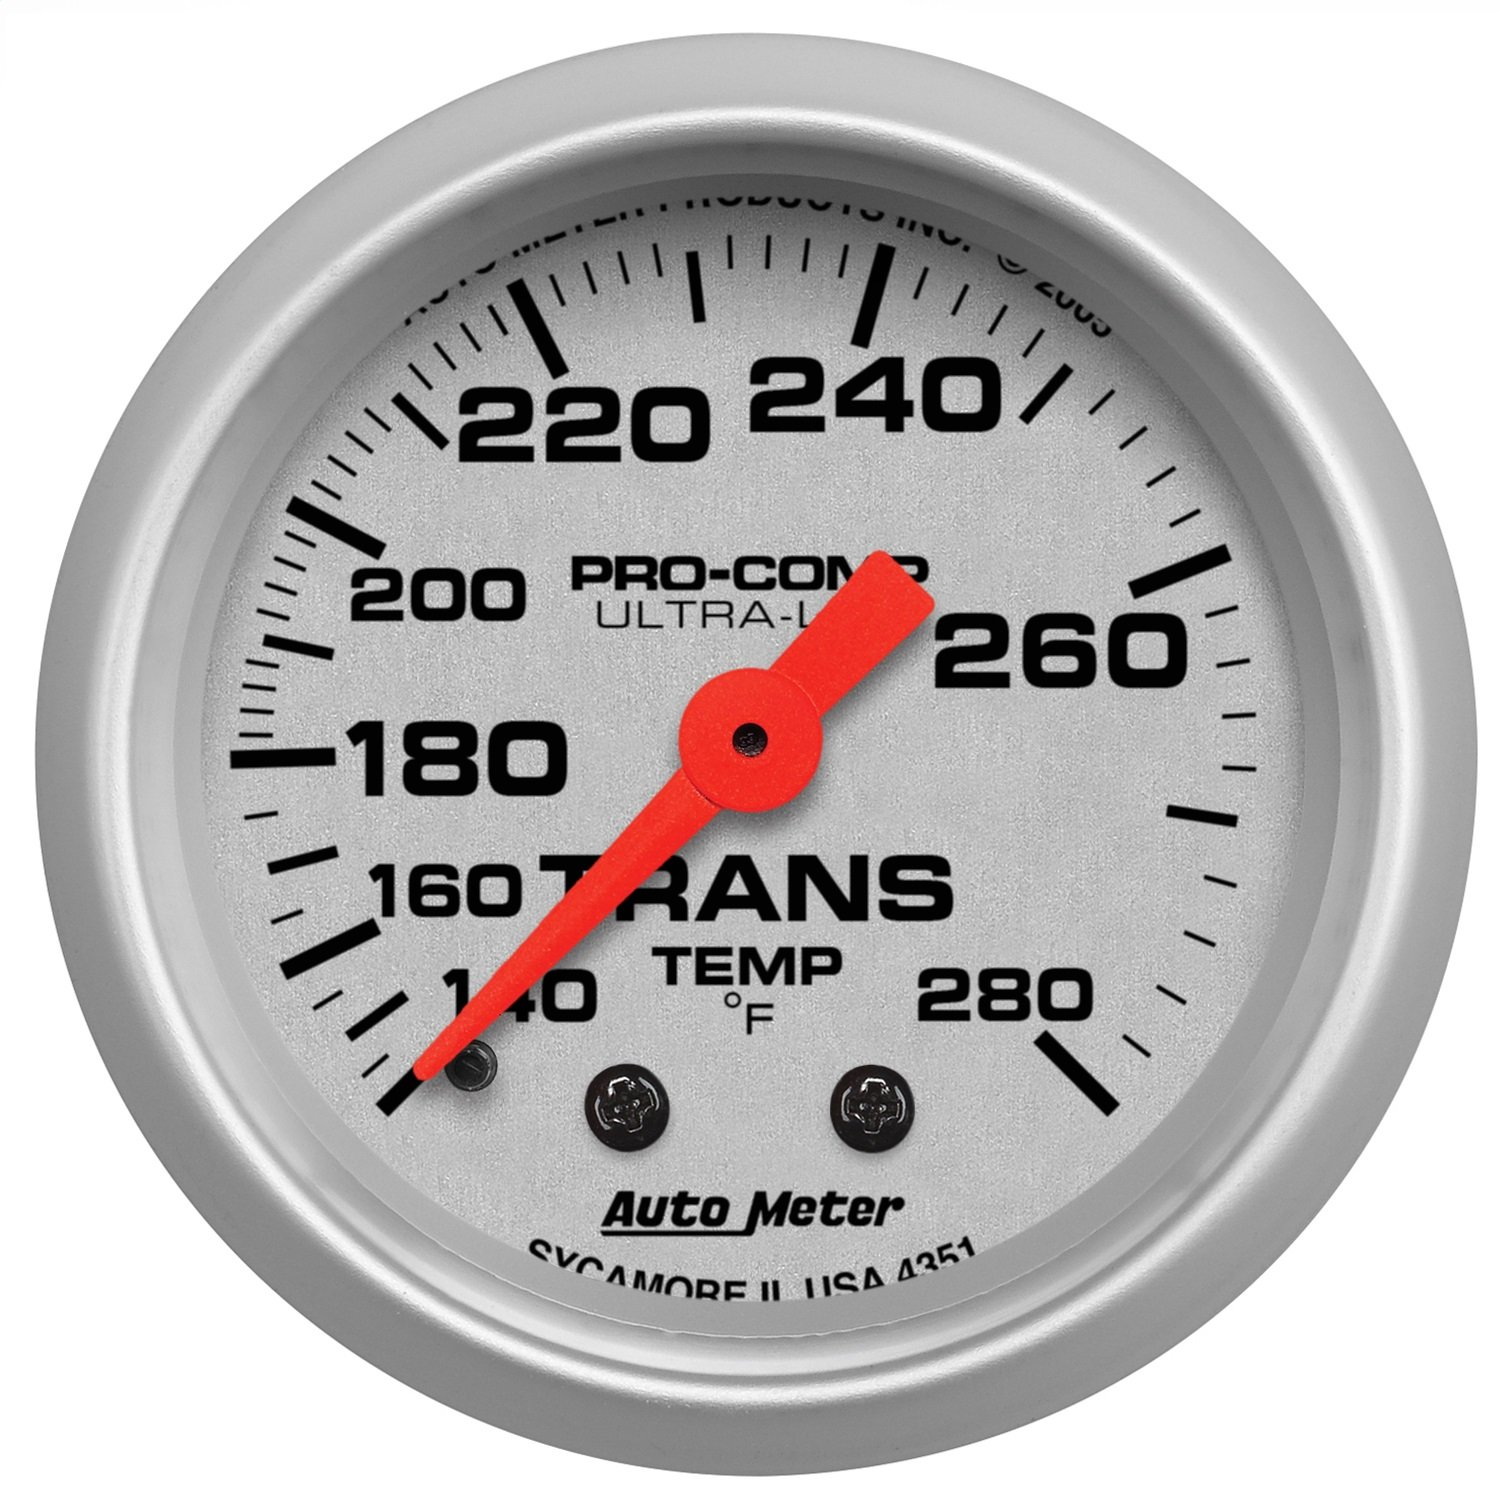 Auto Meter 4351 Ultra-Lite Mechanical Transmission Temperature Gauge by Auto Meter